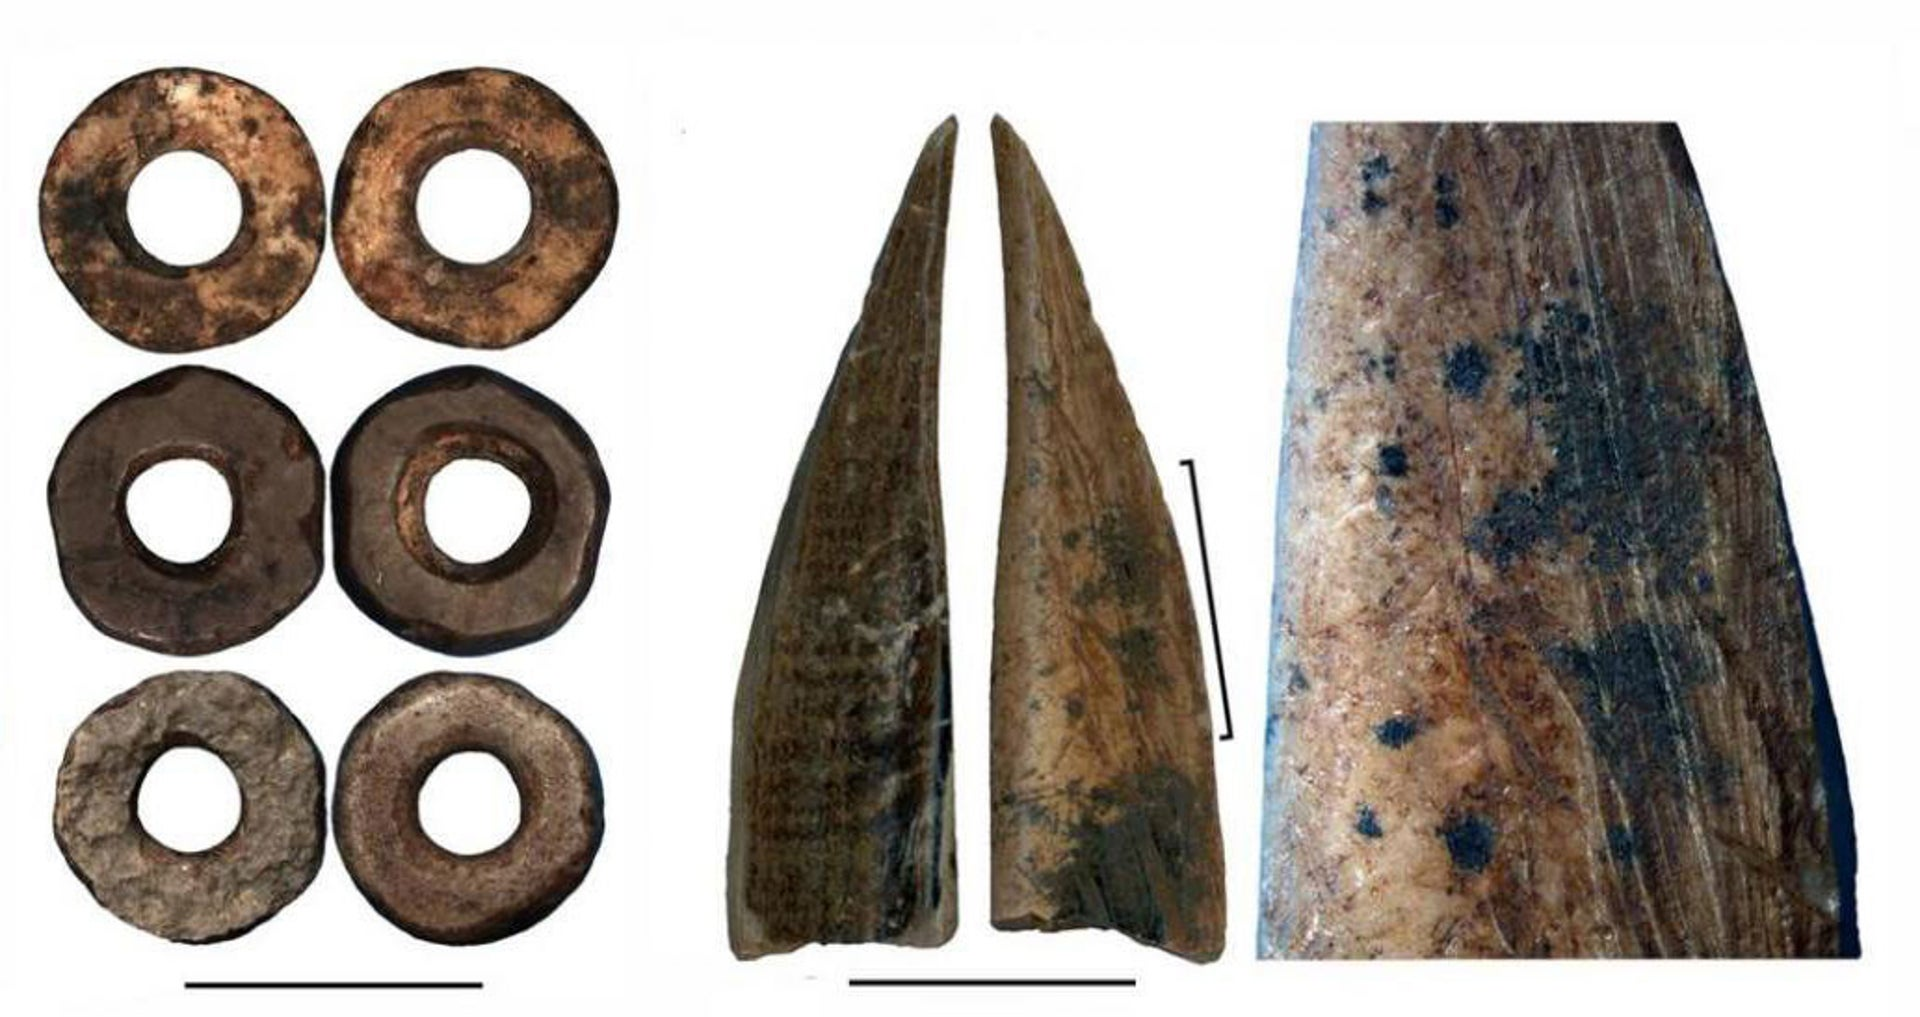 Ostrich eggshell beads, bone tool, and close-up of the bone tool showing traces of scraping.